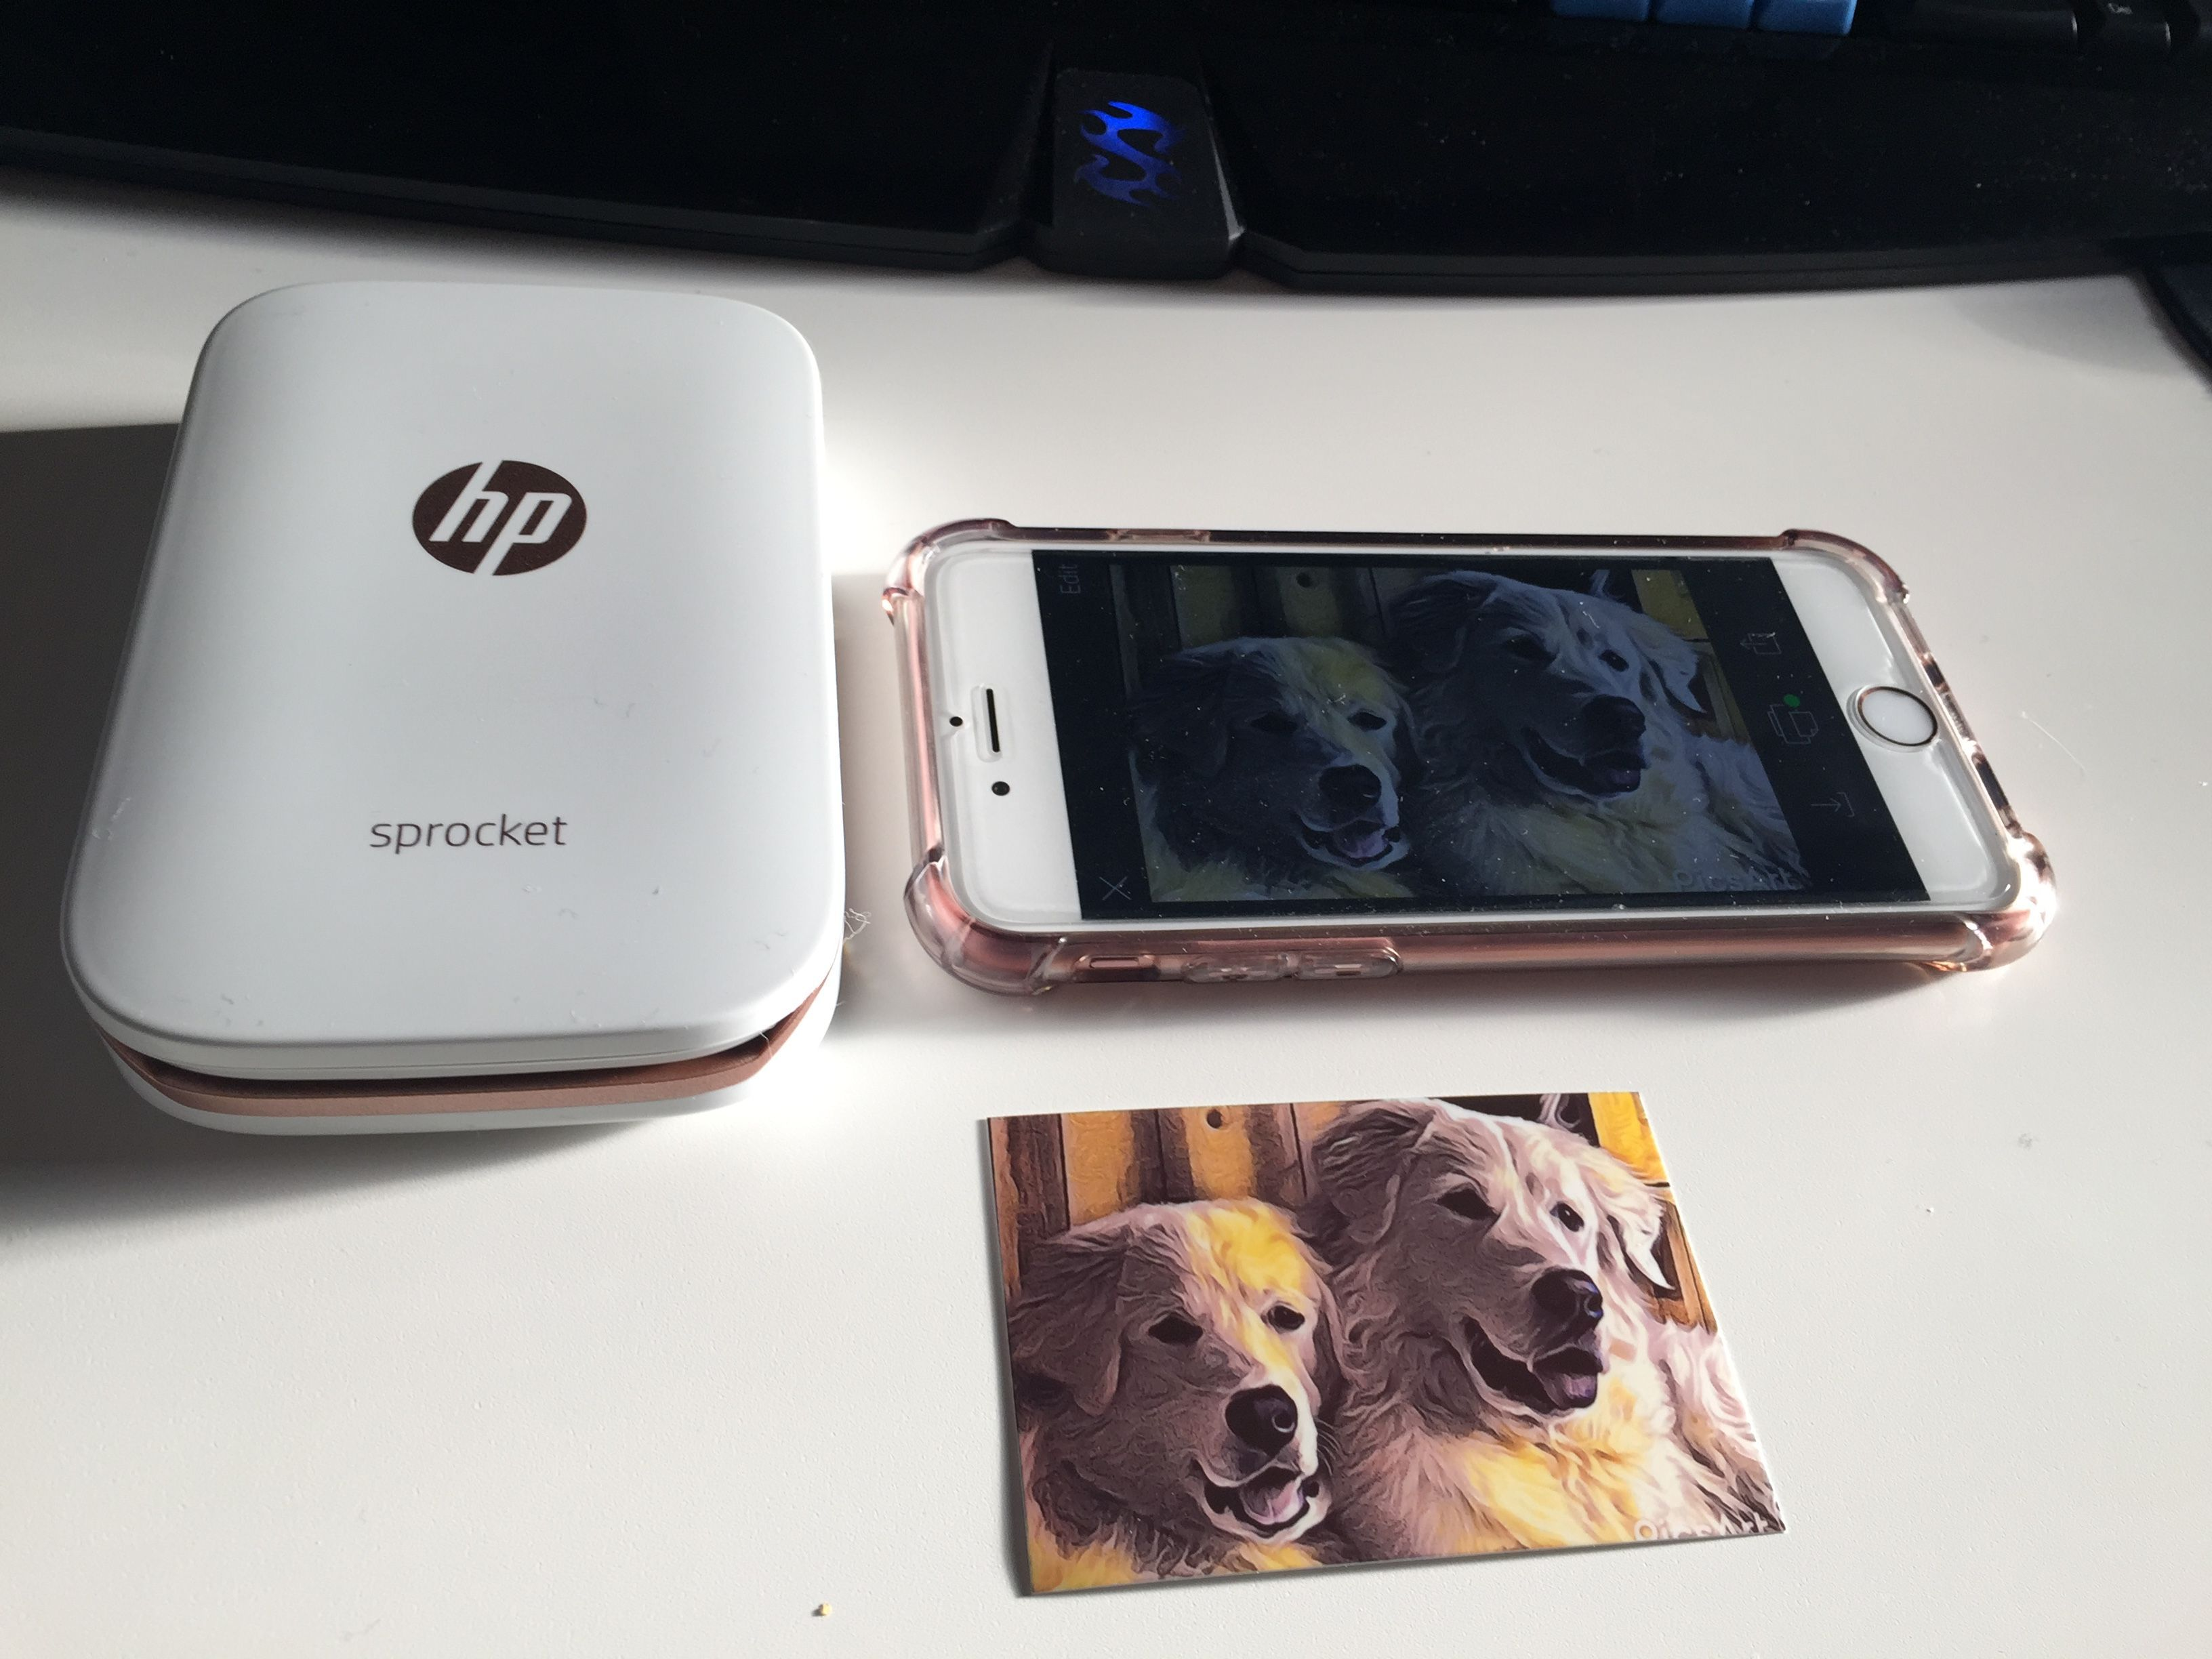 Love my HP Sprocket mini photo printer! Great for printing